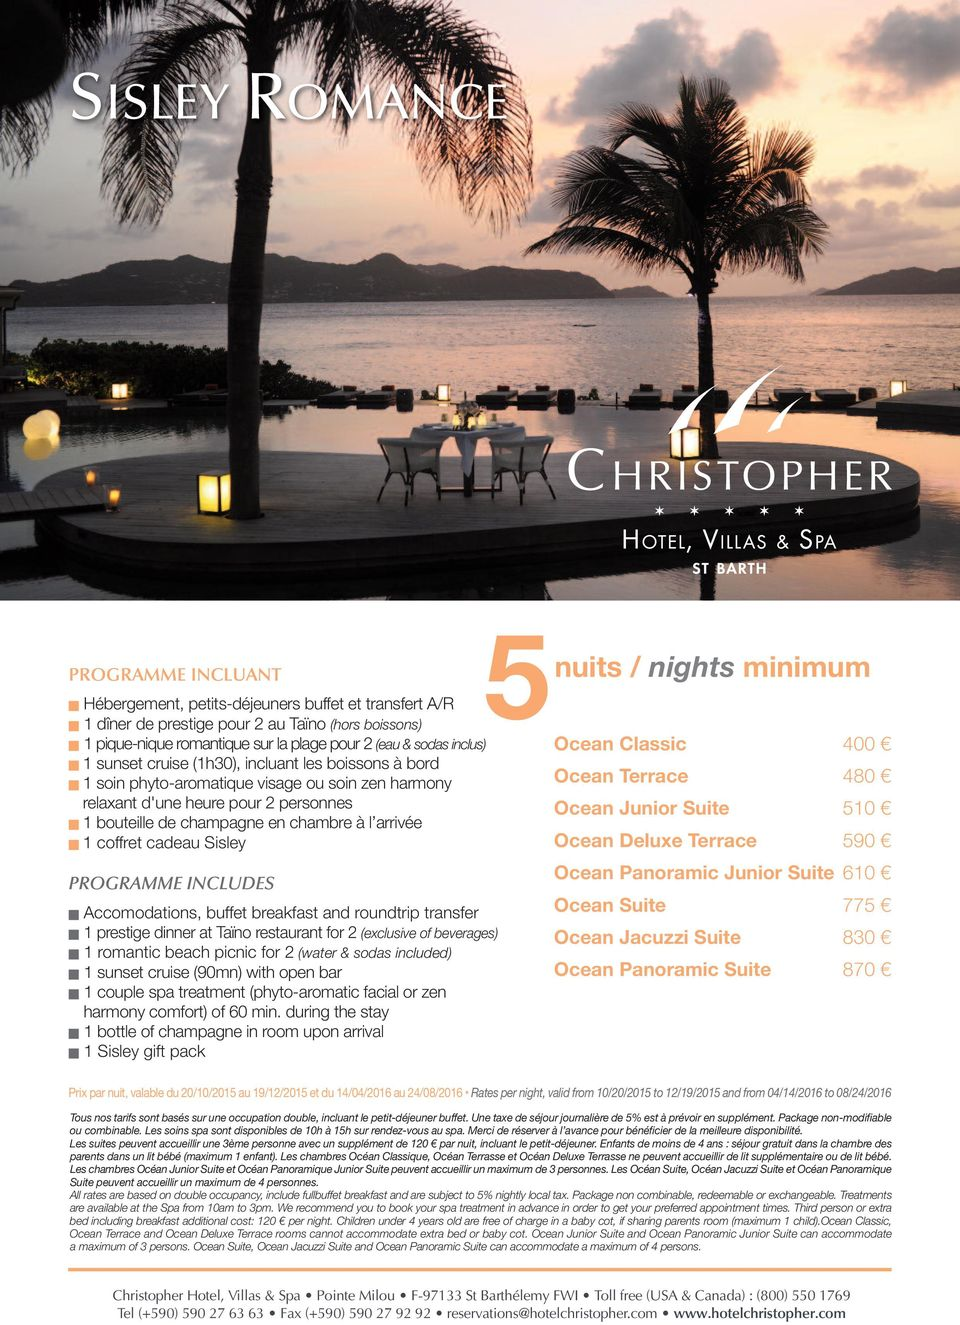 coffret cadeau Sisley n Accomodations, buffet breakfast and roundtrip transfer n 1 prestige dinner at Taïno restaurant for 2 (exclusive of beverages) n 1 romantic beach picnic for 2 (water & sodas